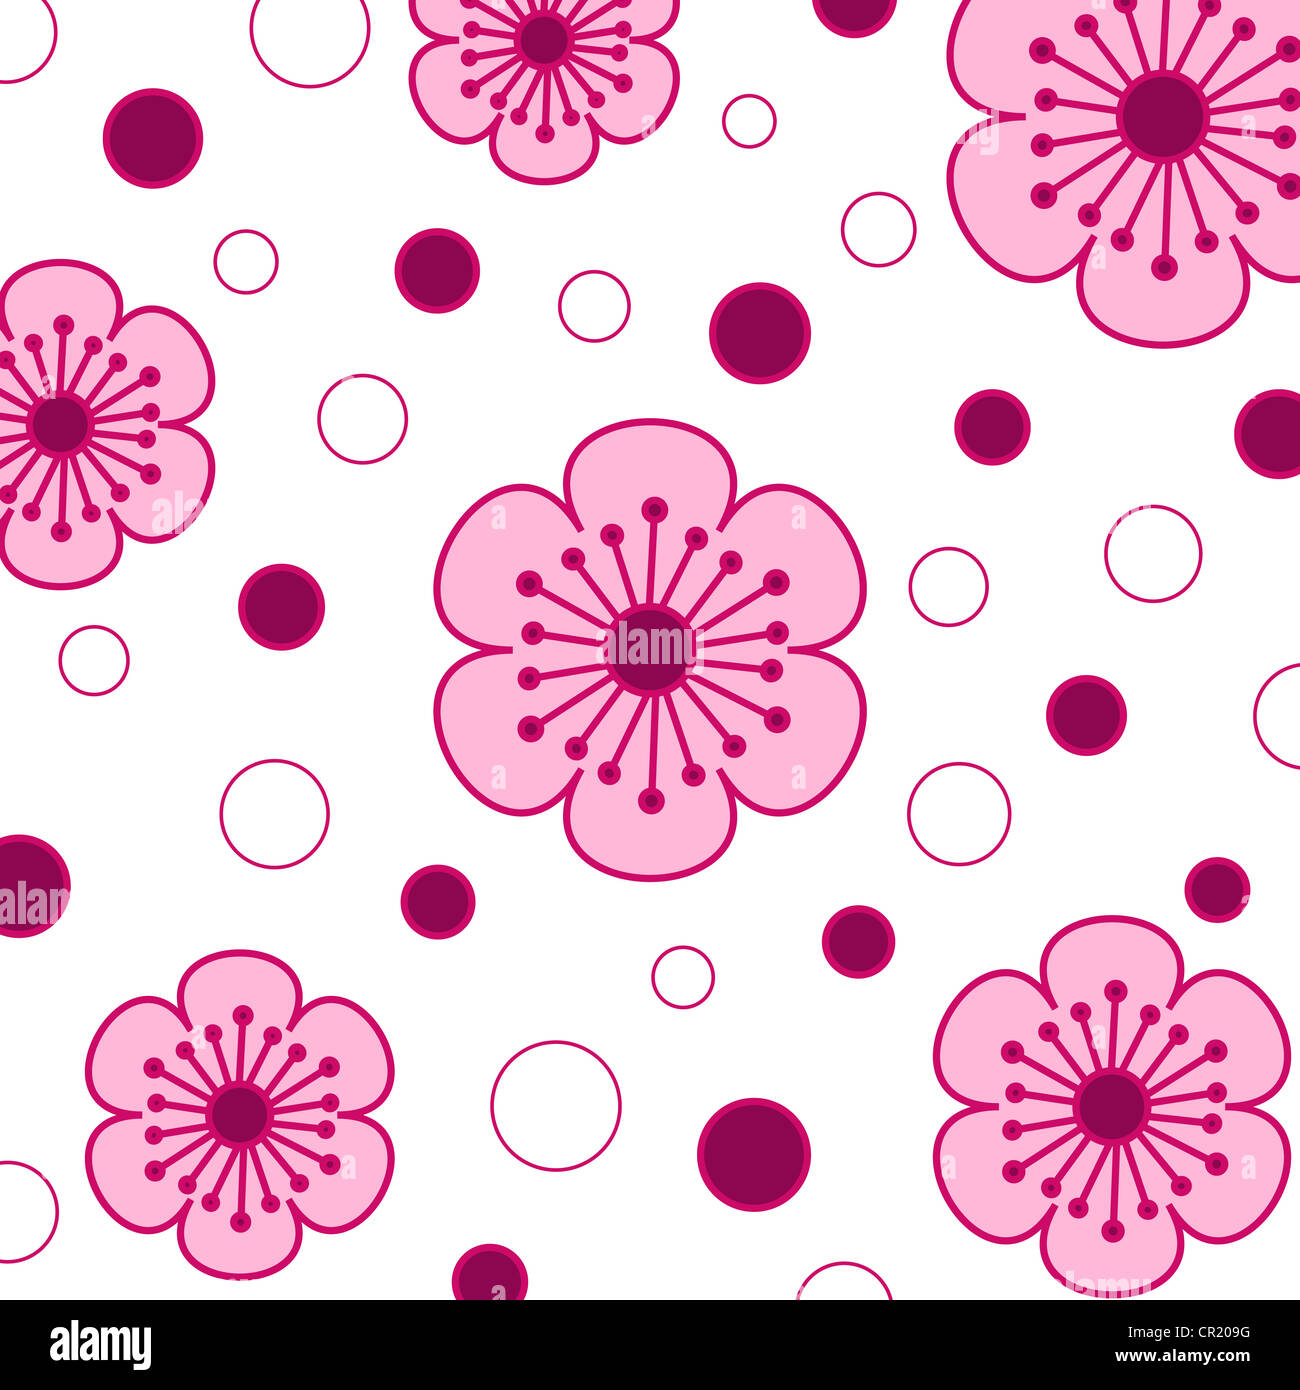 Funky pink floral and circle pattern on white Stock Photo